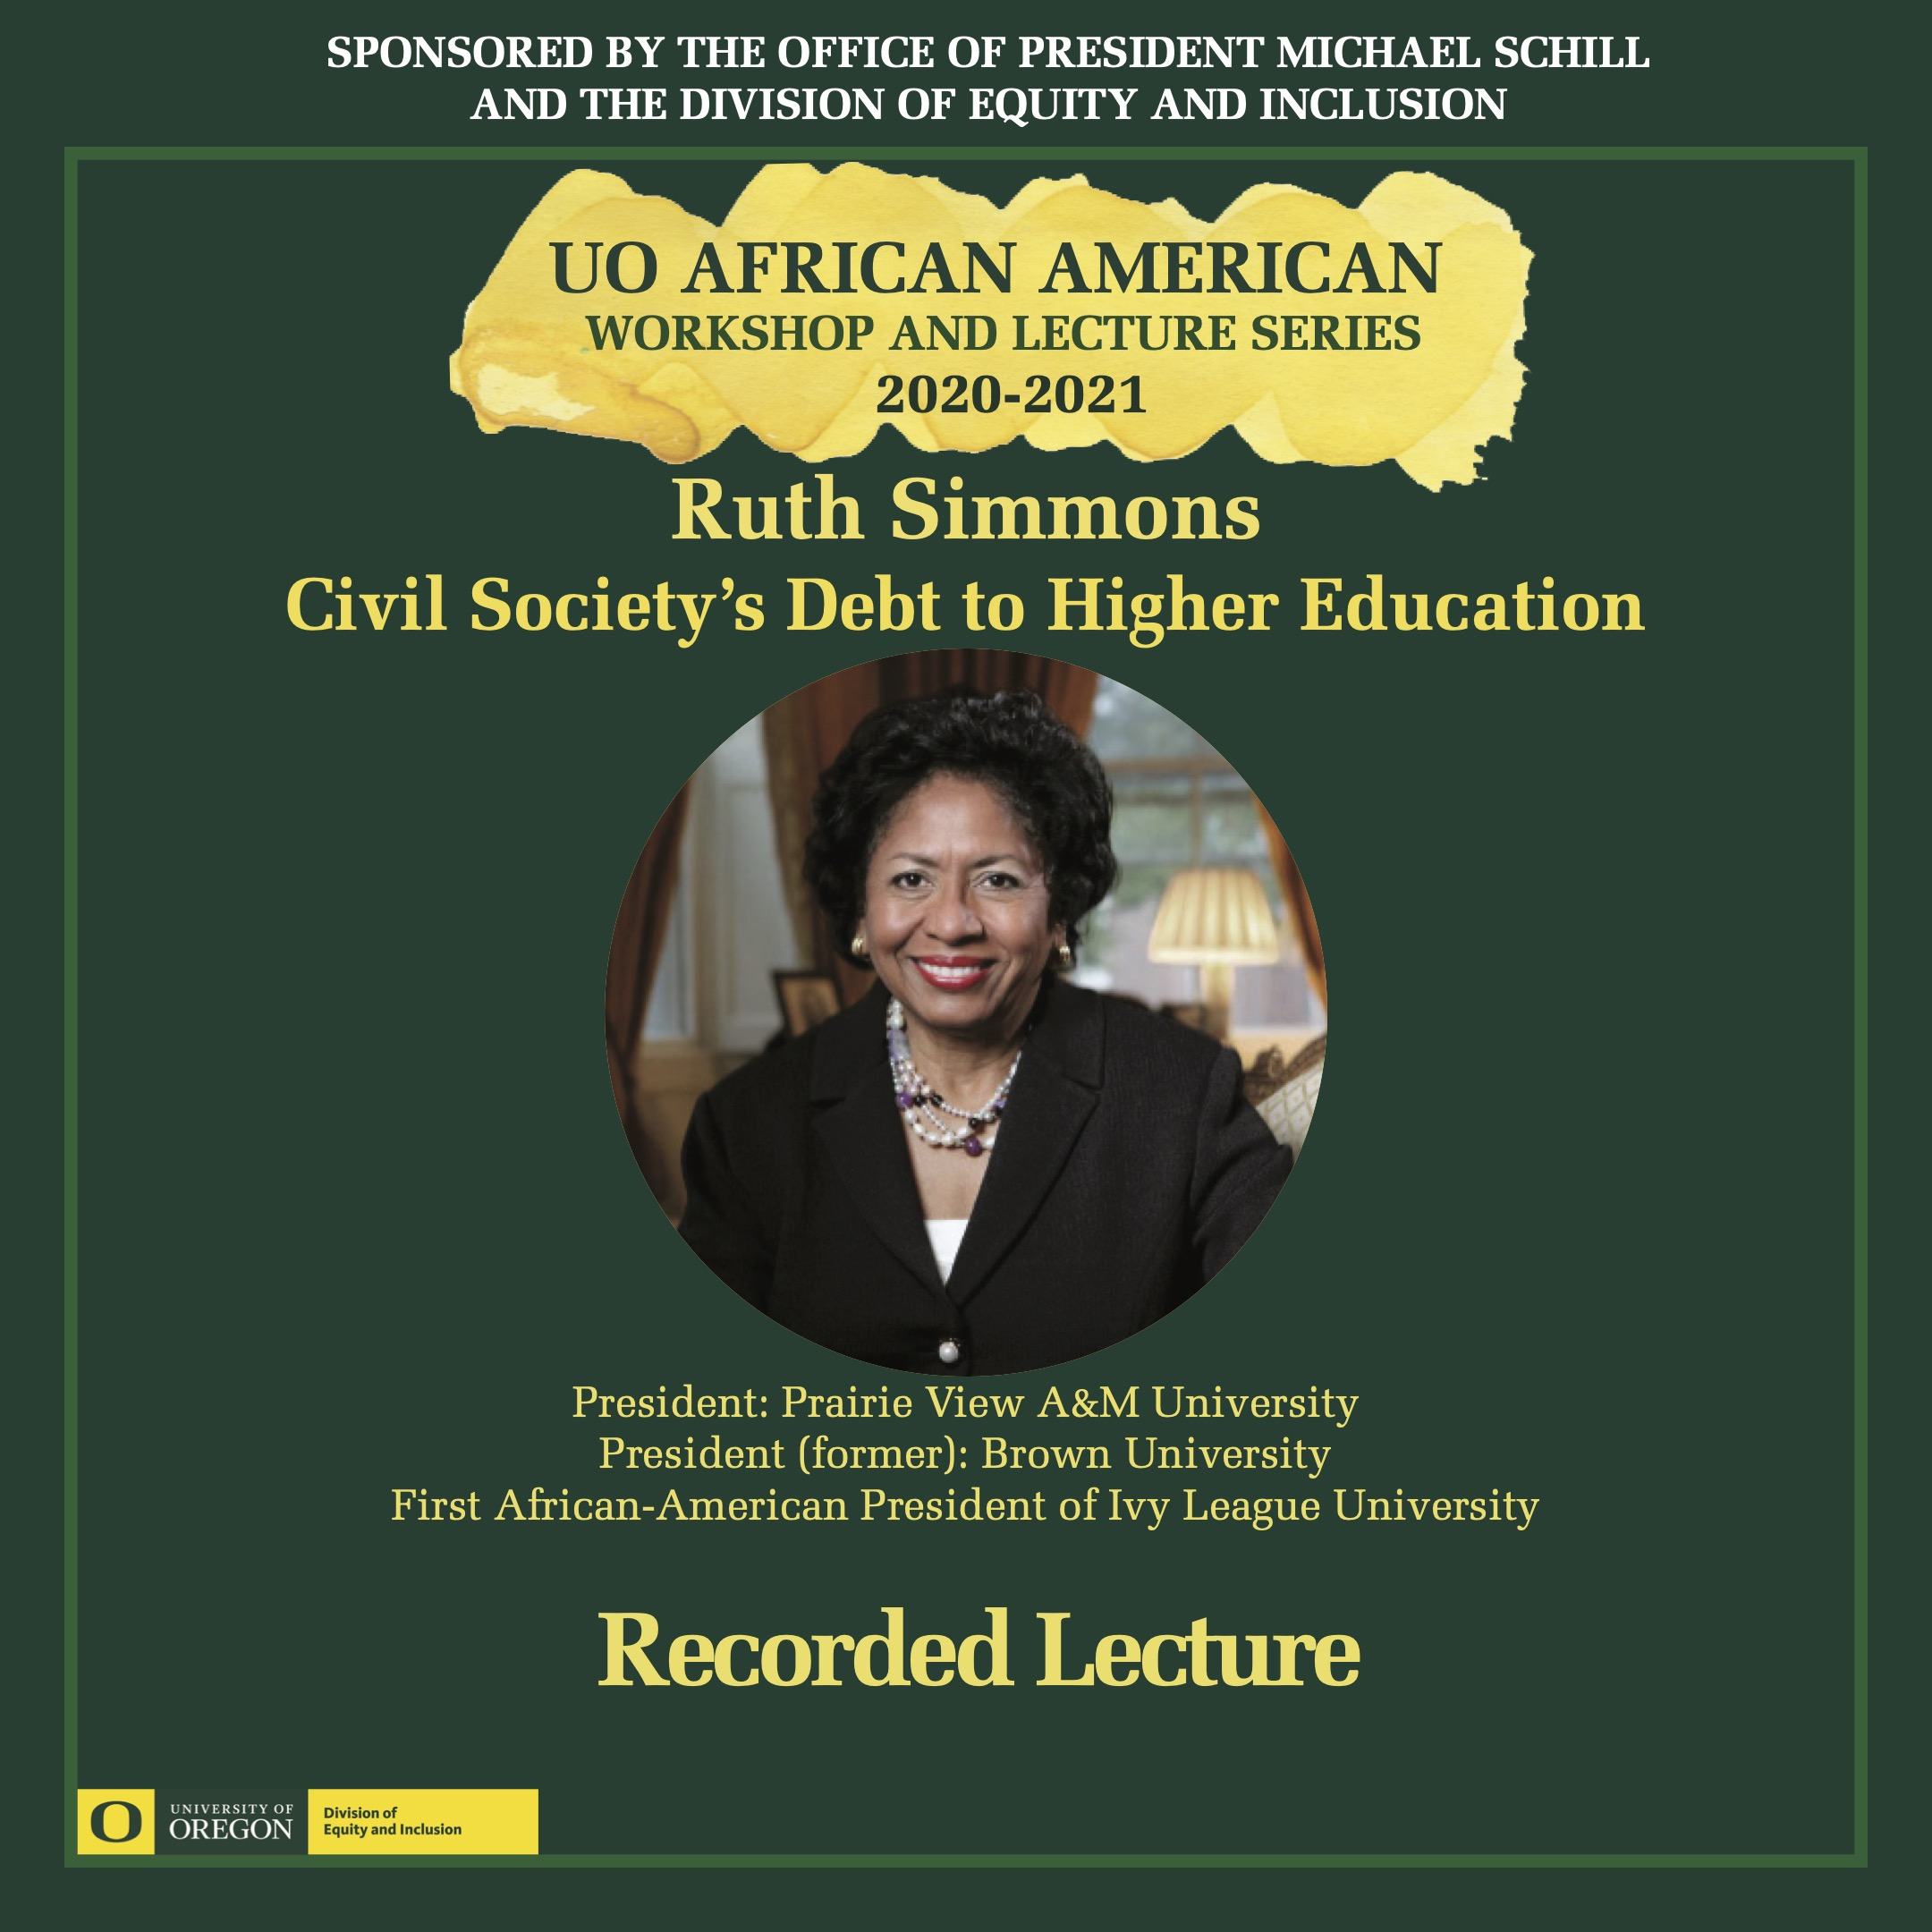 Ruth Simmons Recorded Lecture